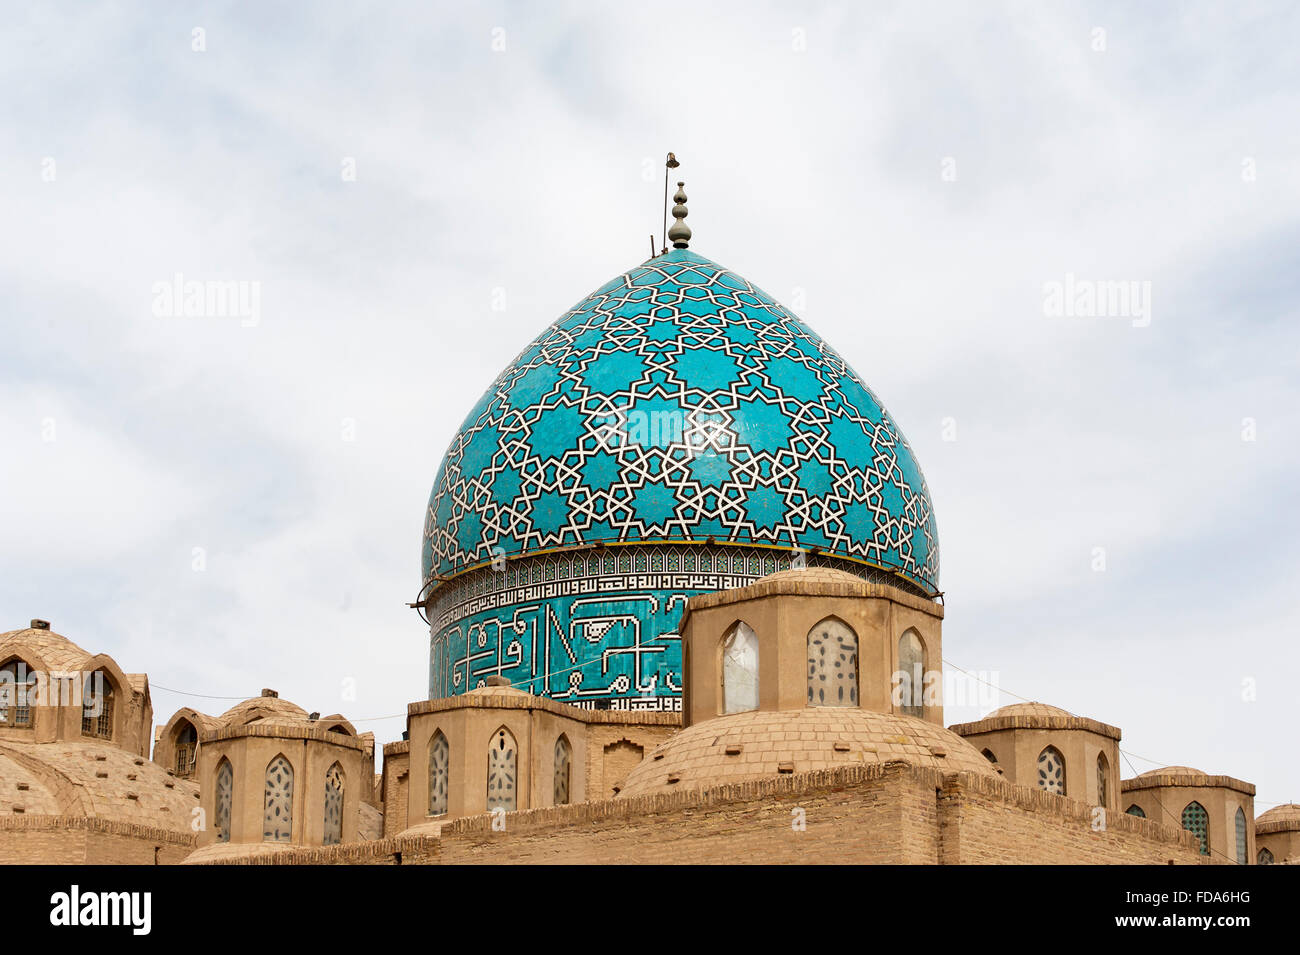 Grave mosque, turquoise-colored dome decorated with stars, mausoleum of Shah Nimatullah Wali, Shi'ite Sufism, - Stock Image